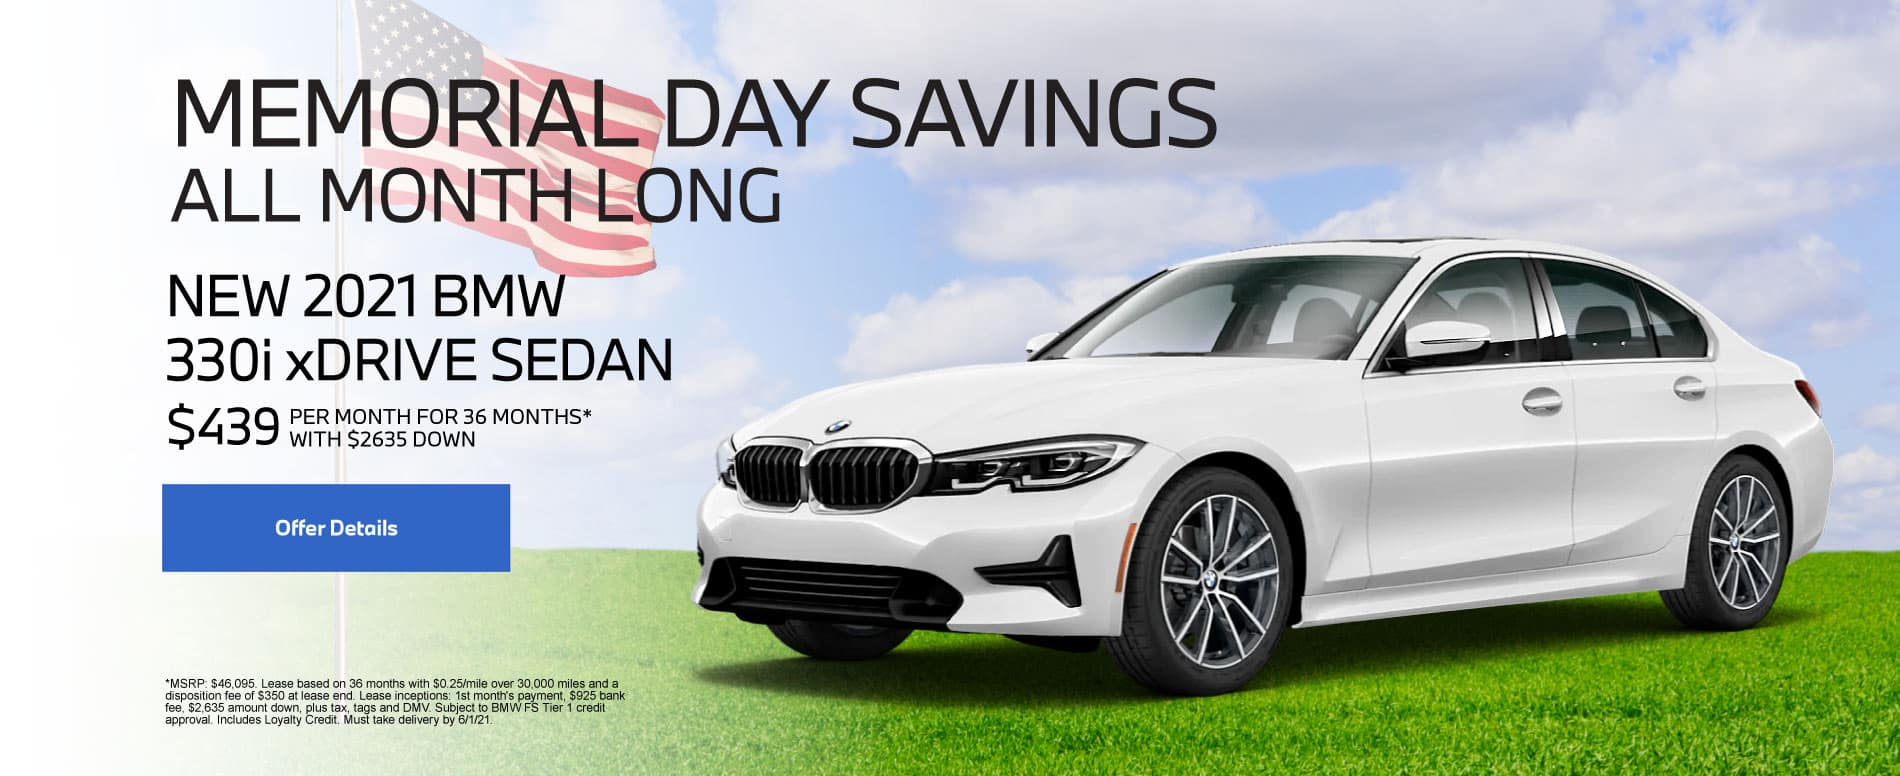 New 2021 BMW 330i $439 per month - Click for Details